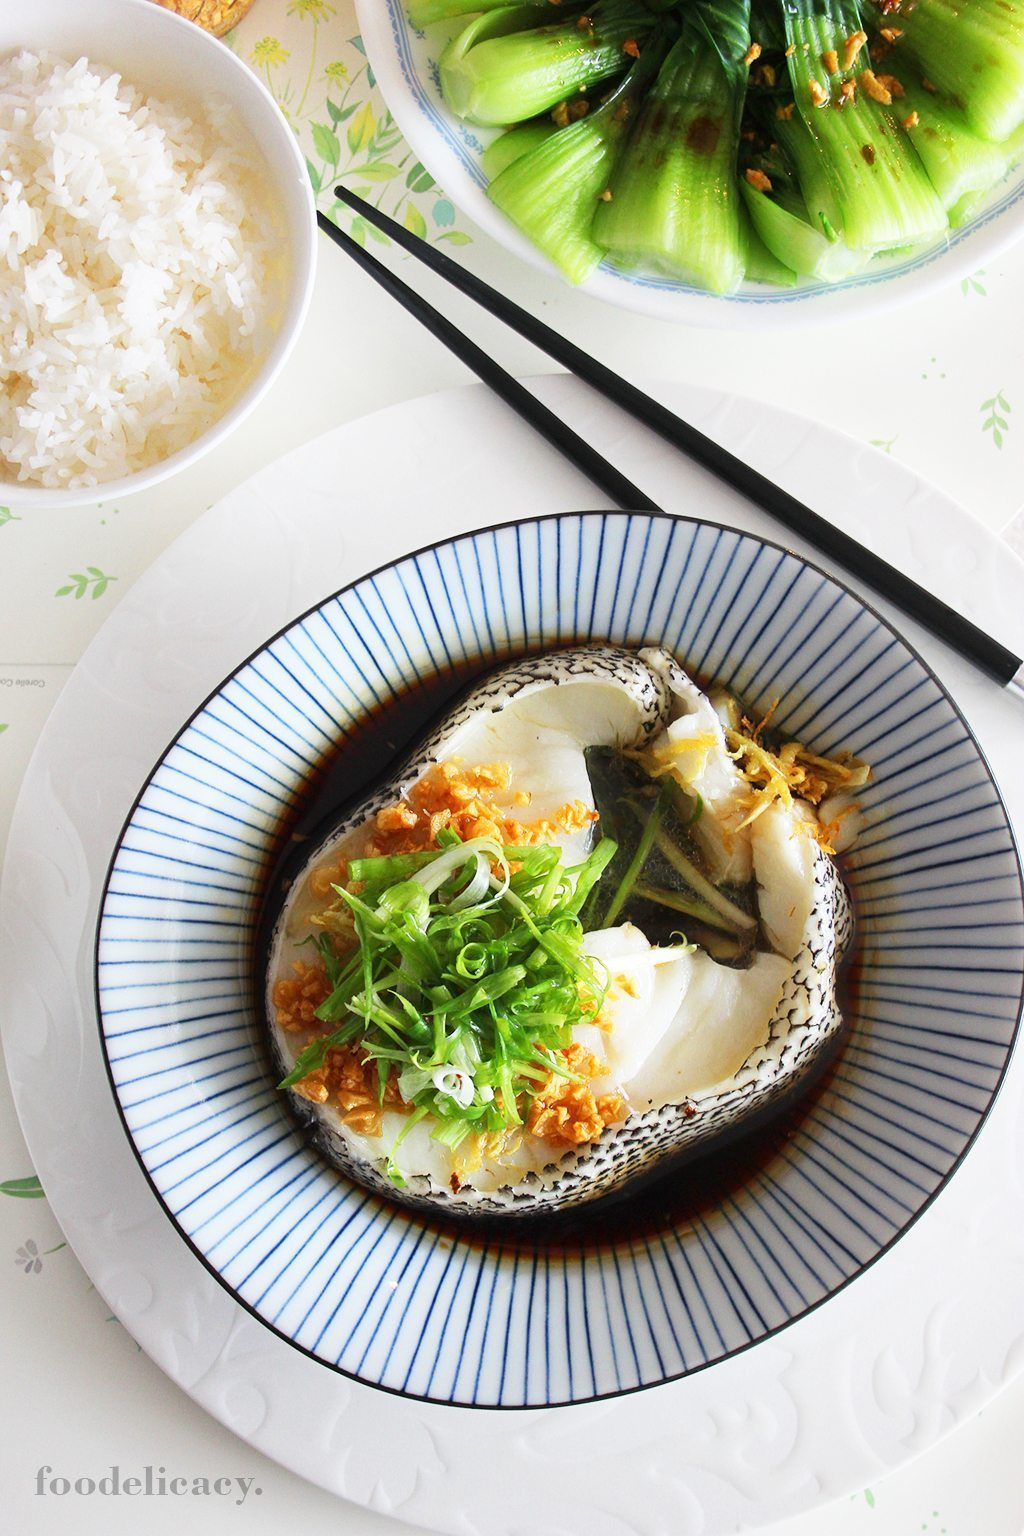 Cantonese Style Steamed Cod With Special Soy Sauce Foodelicacy